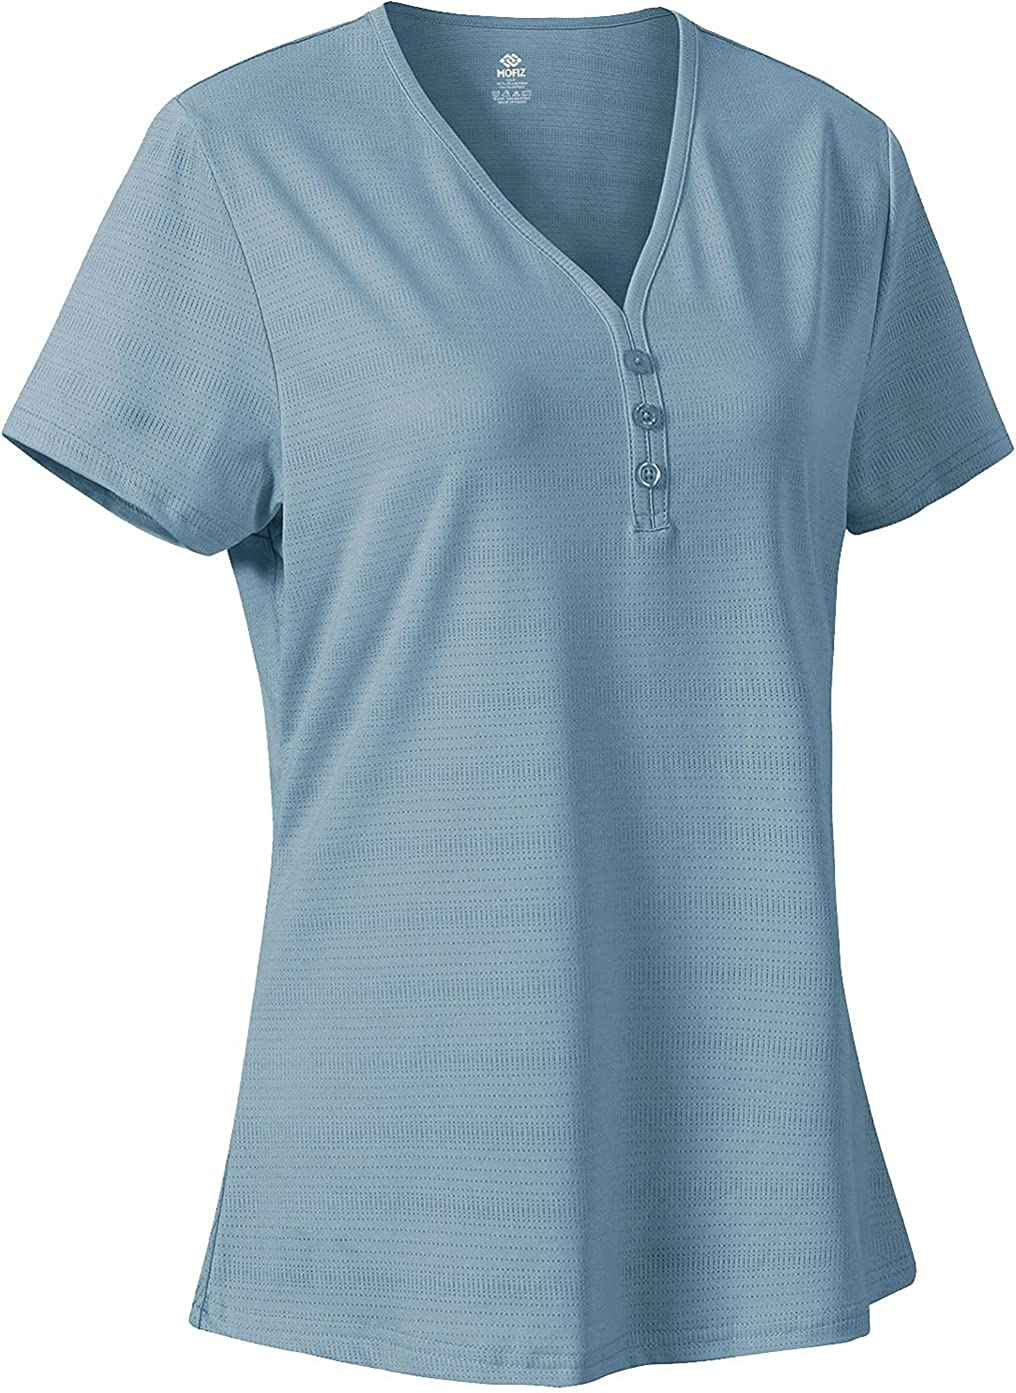 Hiking Shirts New arrival for Women Minneapolis Mall Short Sleeve Sun Athl 50+ UPF Protection